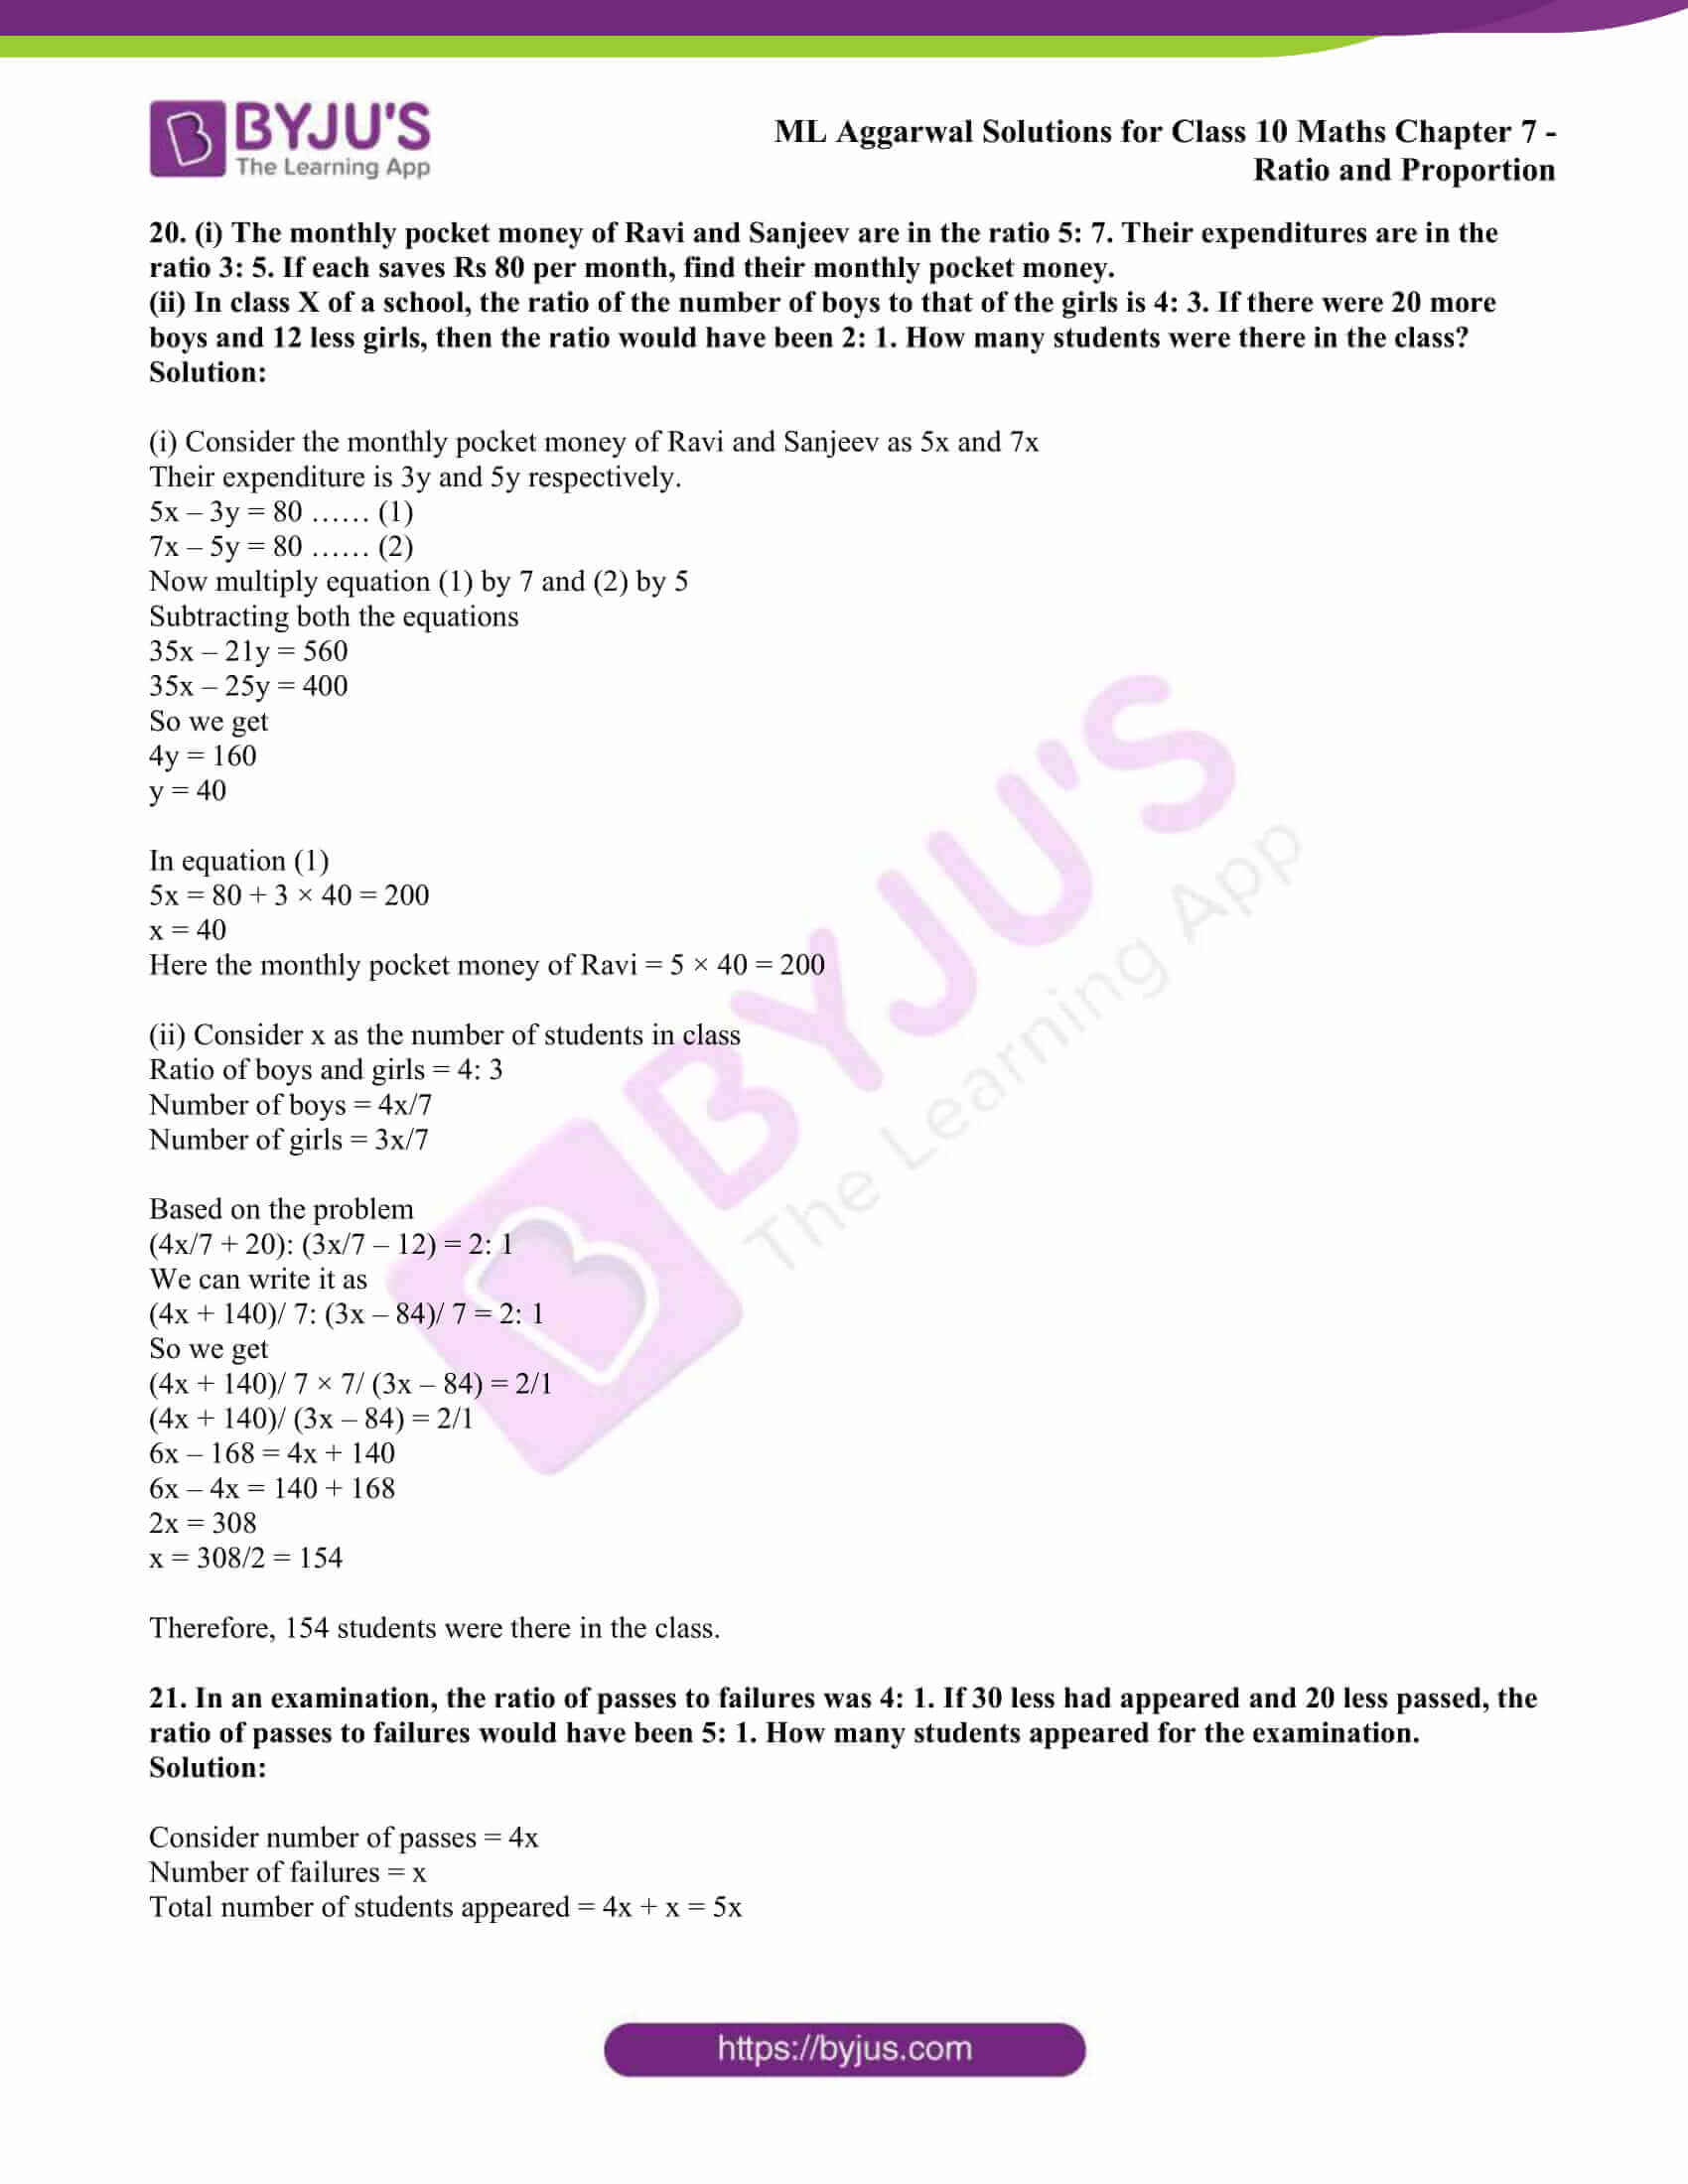 ml aggarwal solutions class 10 maths chapter 7 13